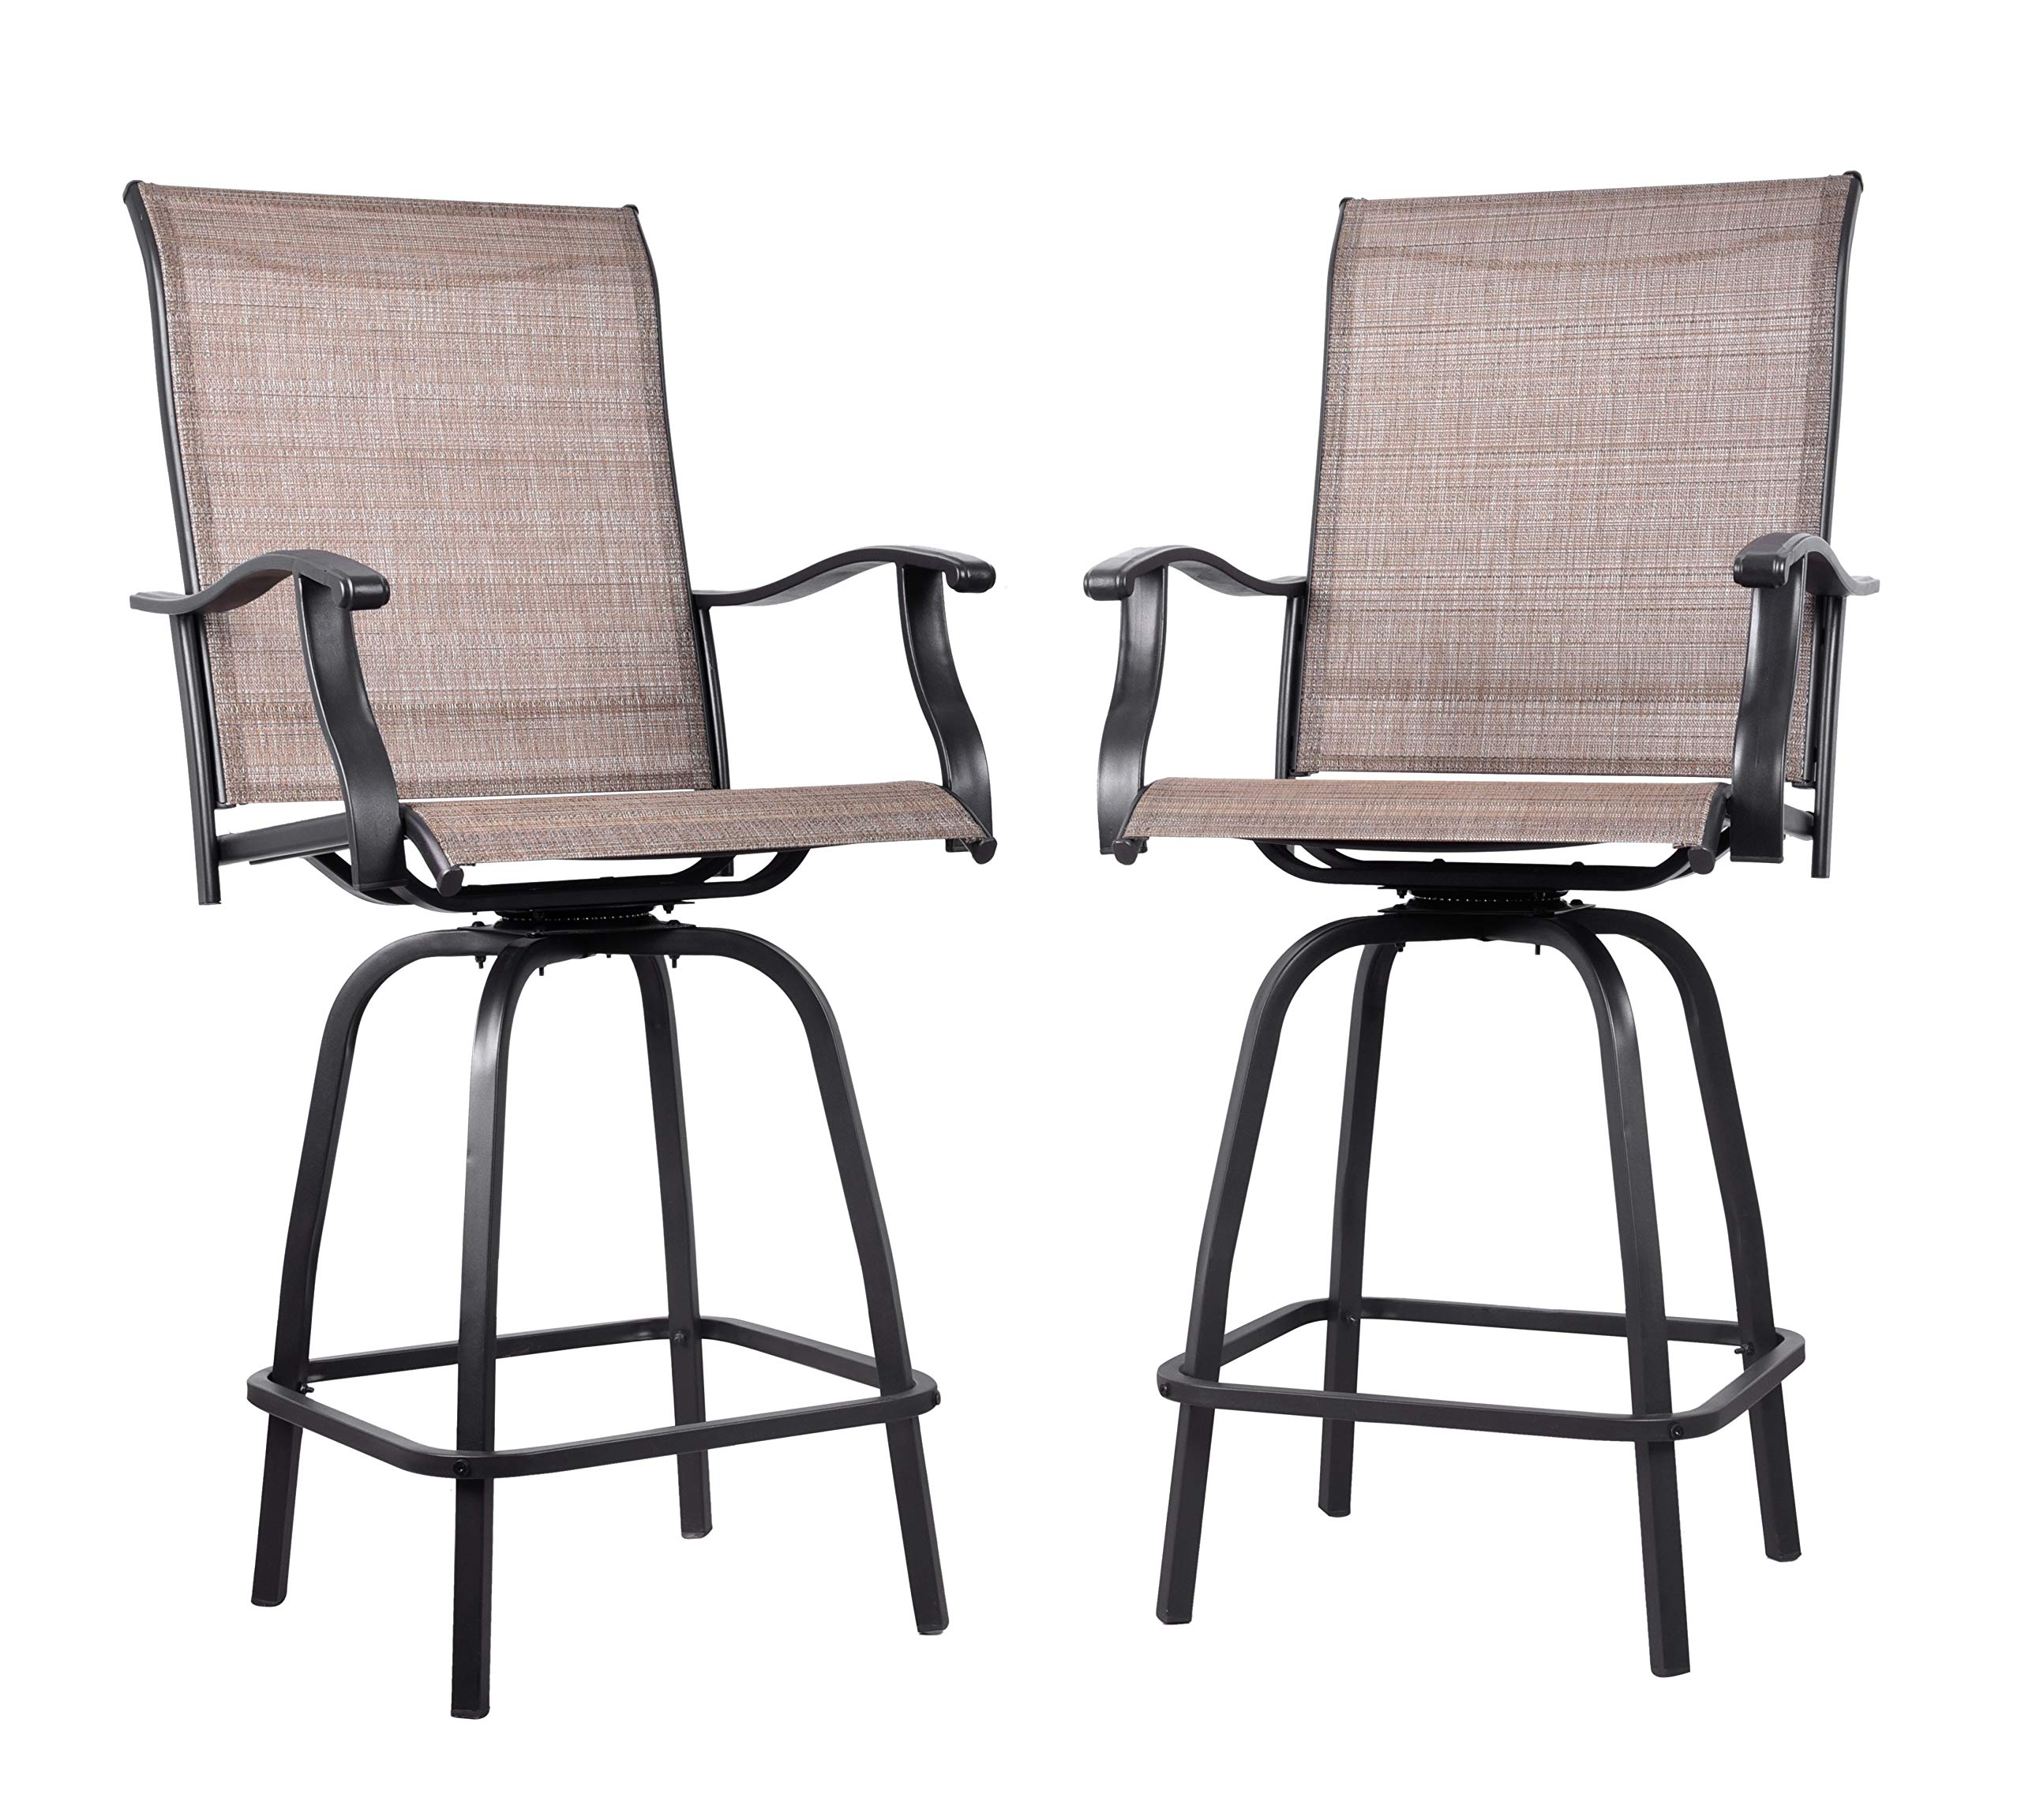 EMERIT Outdoor Swivel Bar Stools Bar Height Patio Chairs, Set of 2 by EMERIT